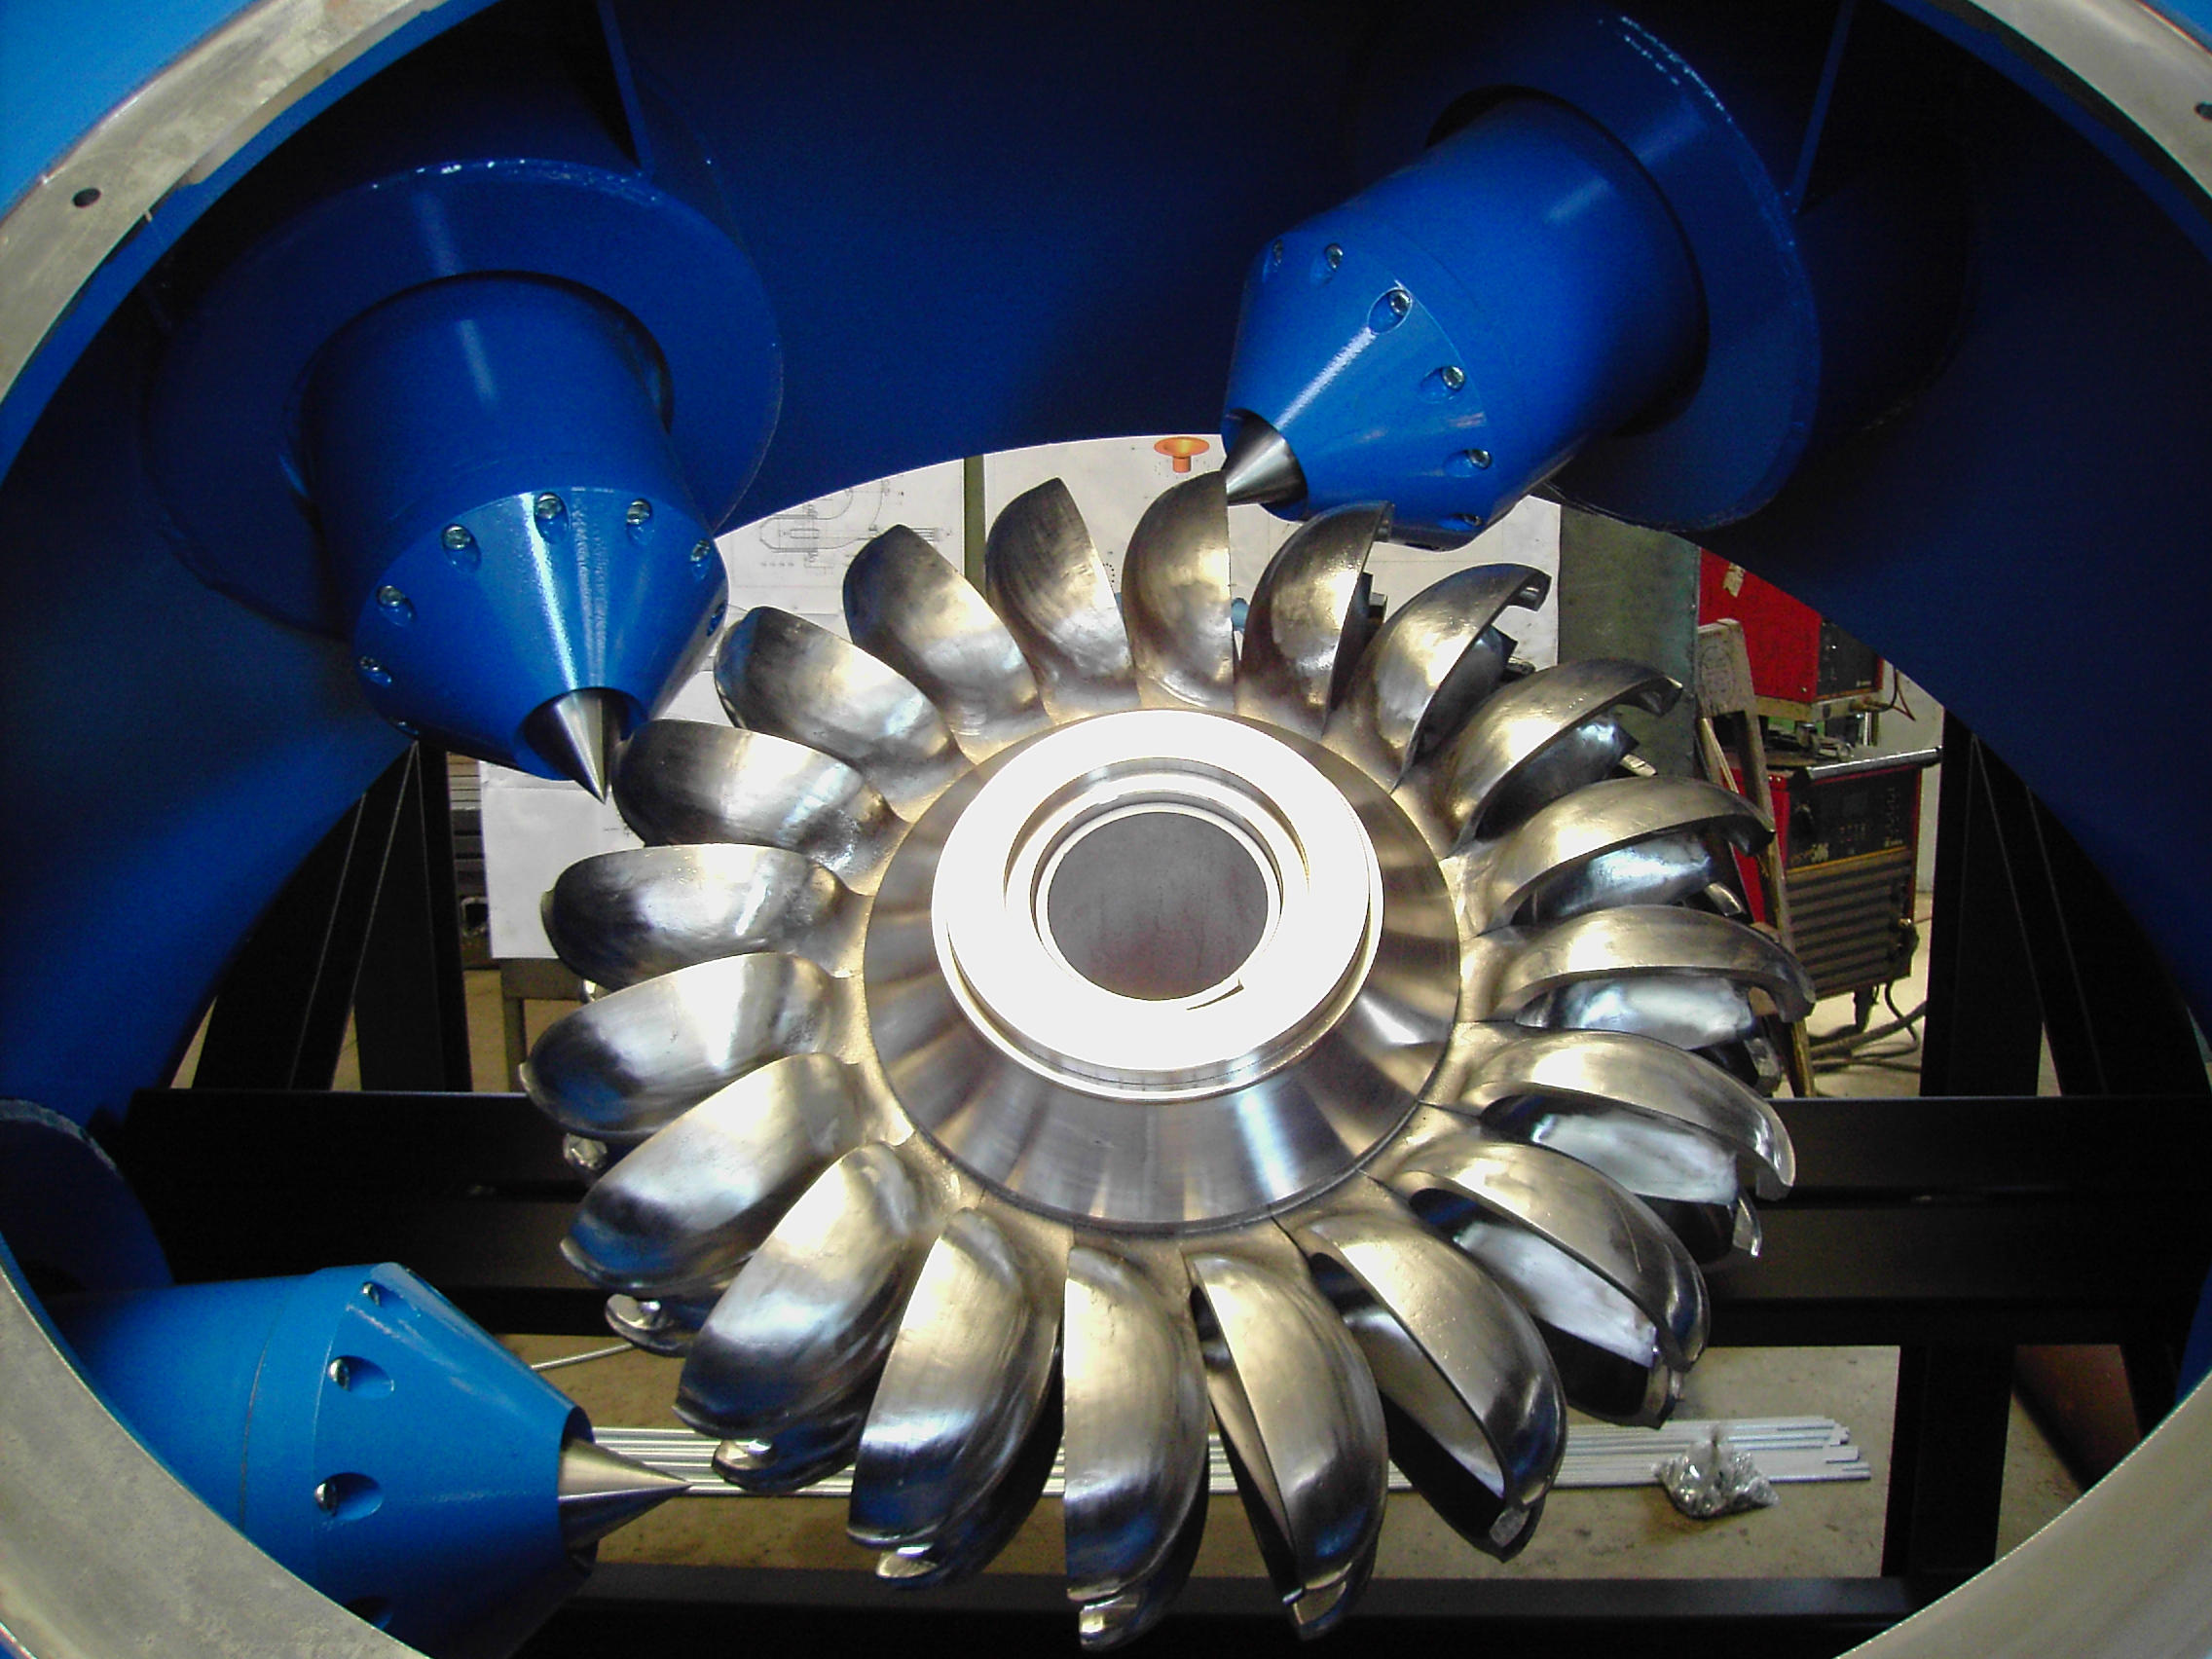 Global Hydraulic Turbines Market Comprehensive Evaluation of the Industry via in-depth Qualitative Insights by 2026